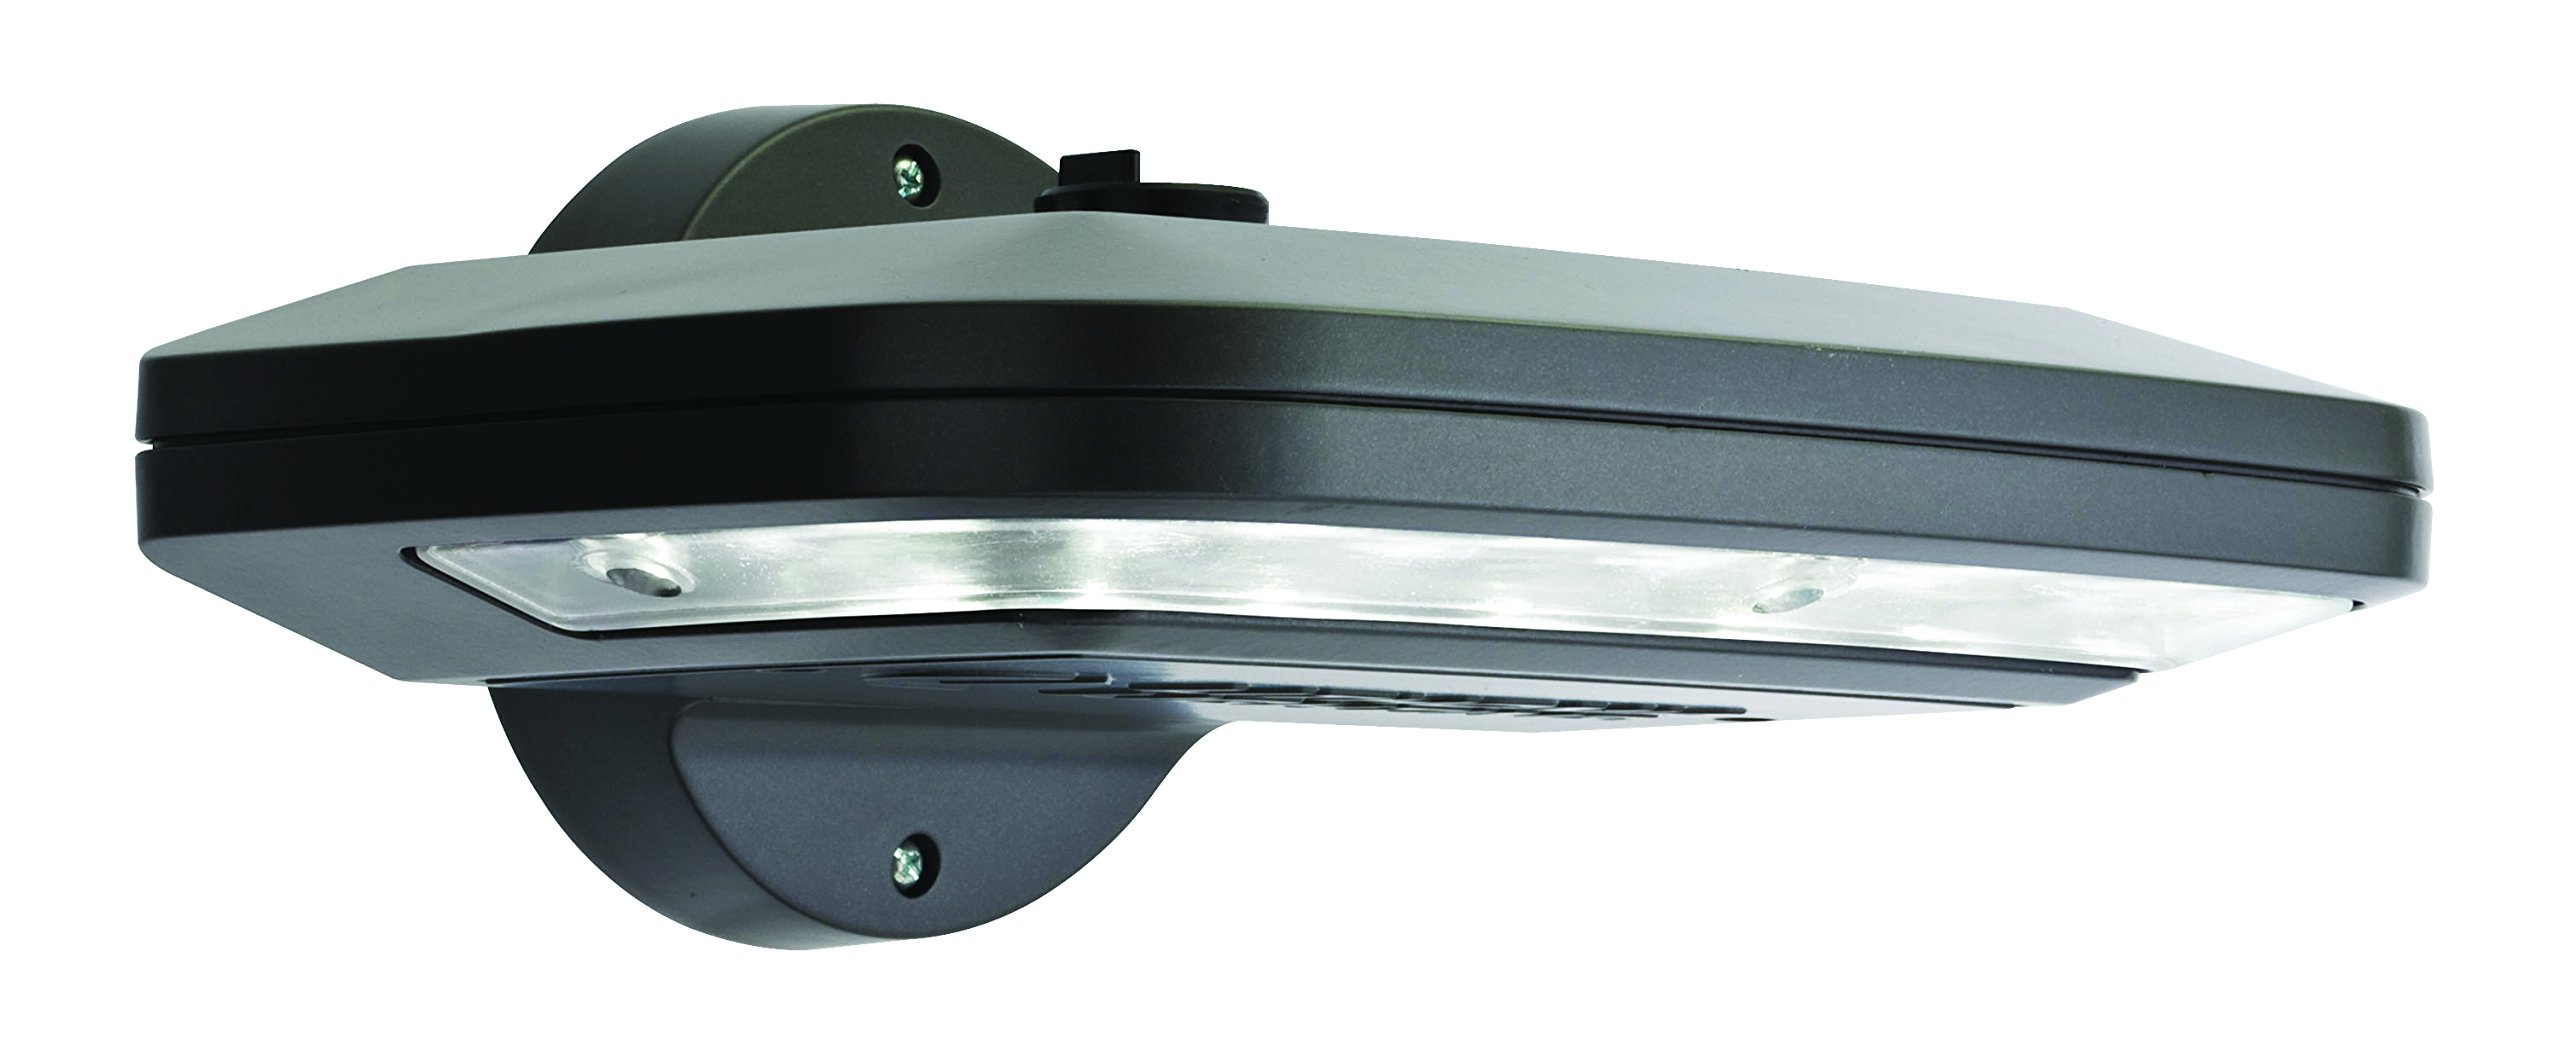 Lithonia Lighting OLW14 M2 Bronze LED Outdoor Wall Mount Area Light by Lithonia Lighting